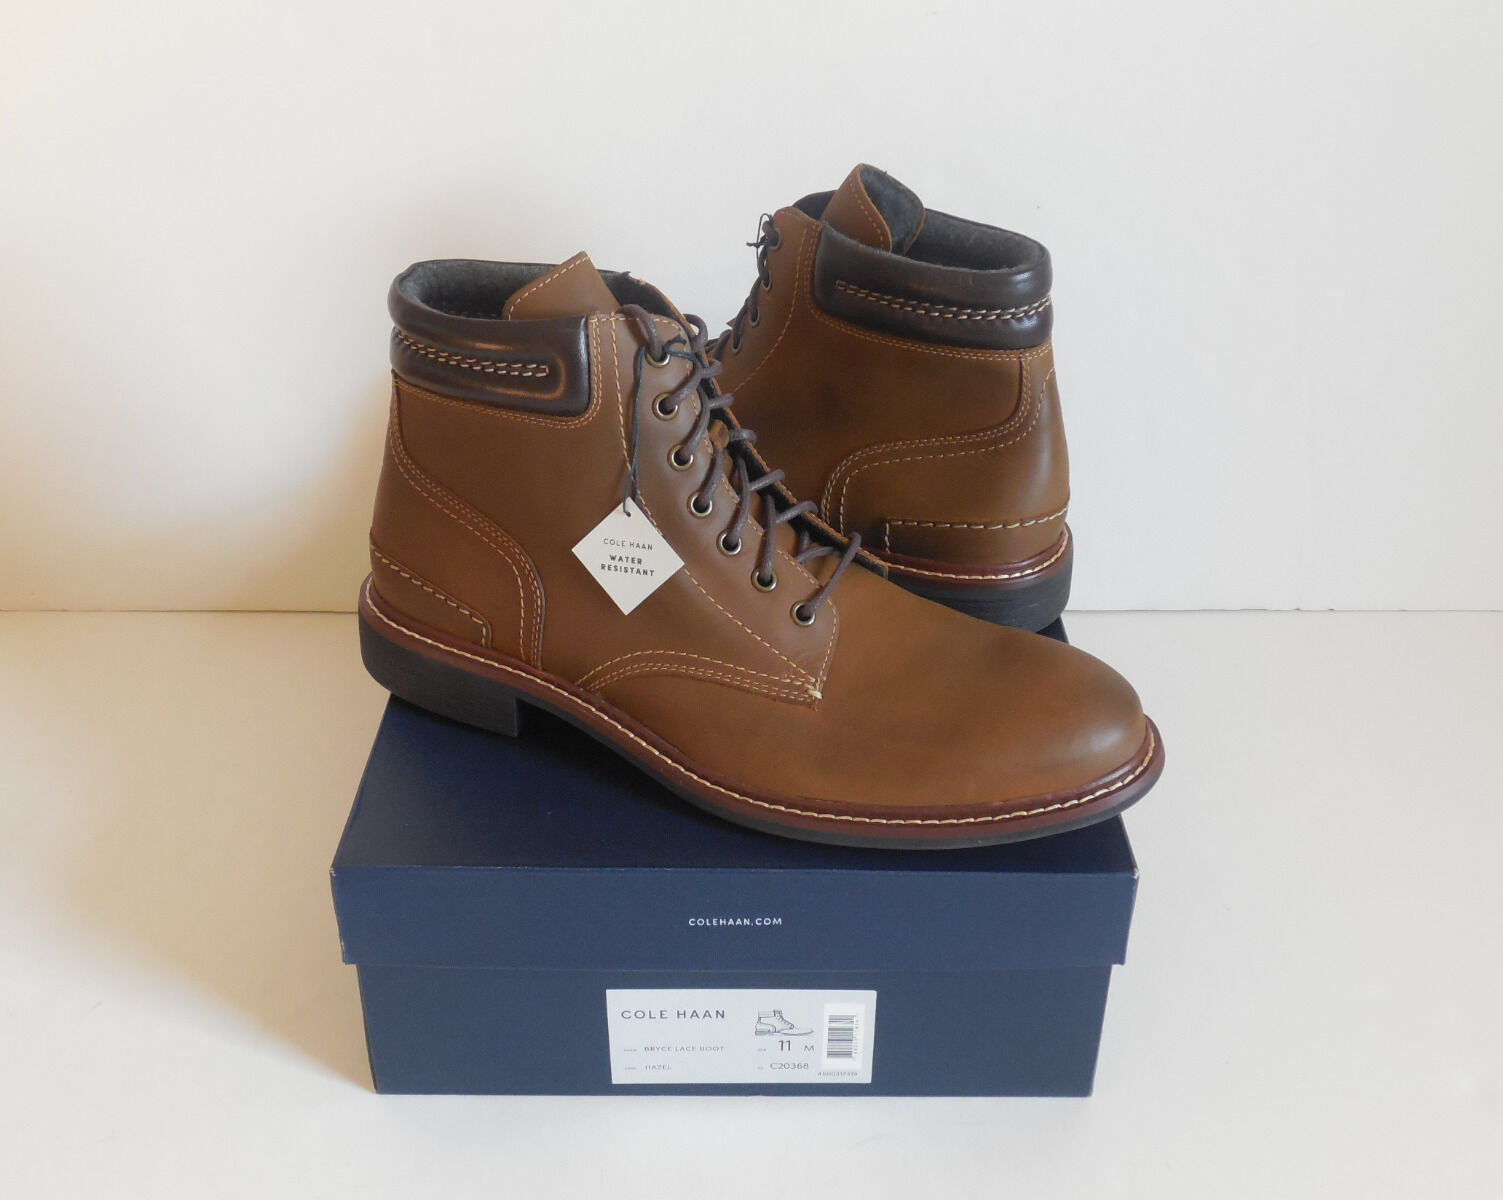 Cole Haan Bryce Leather Lace-Up Water Resistant Men's Boots Size 11M New